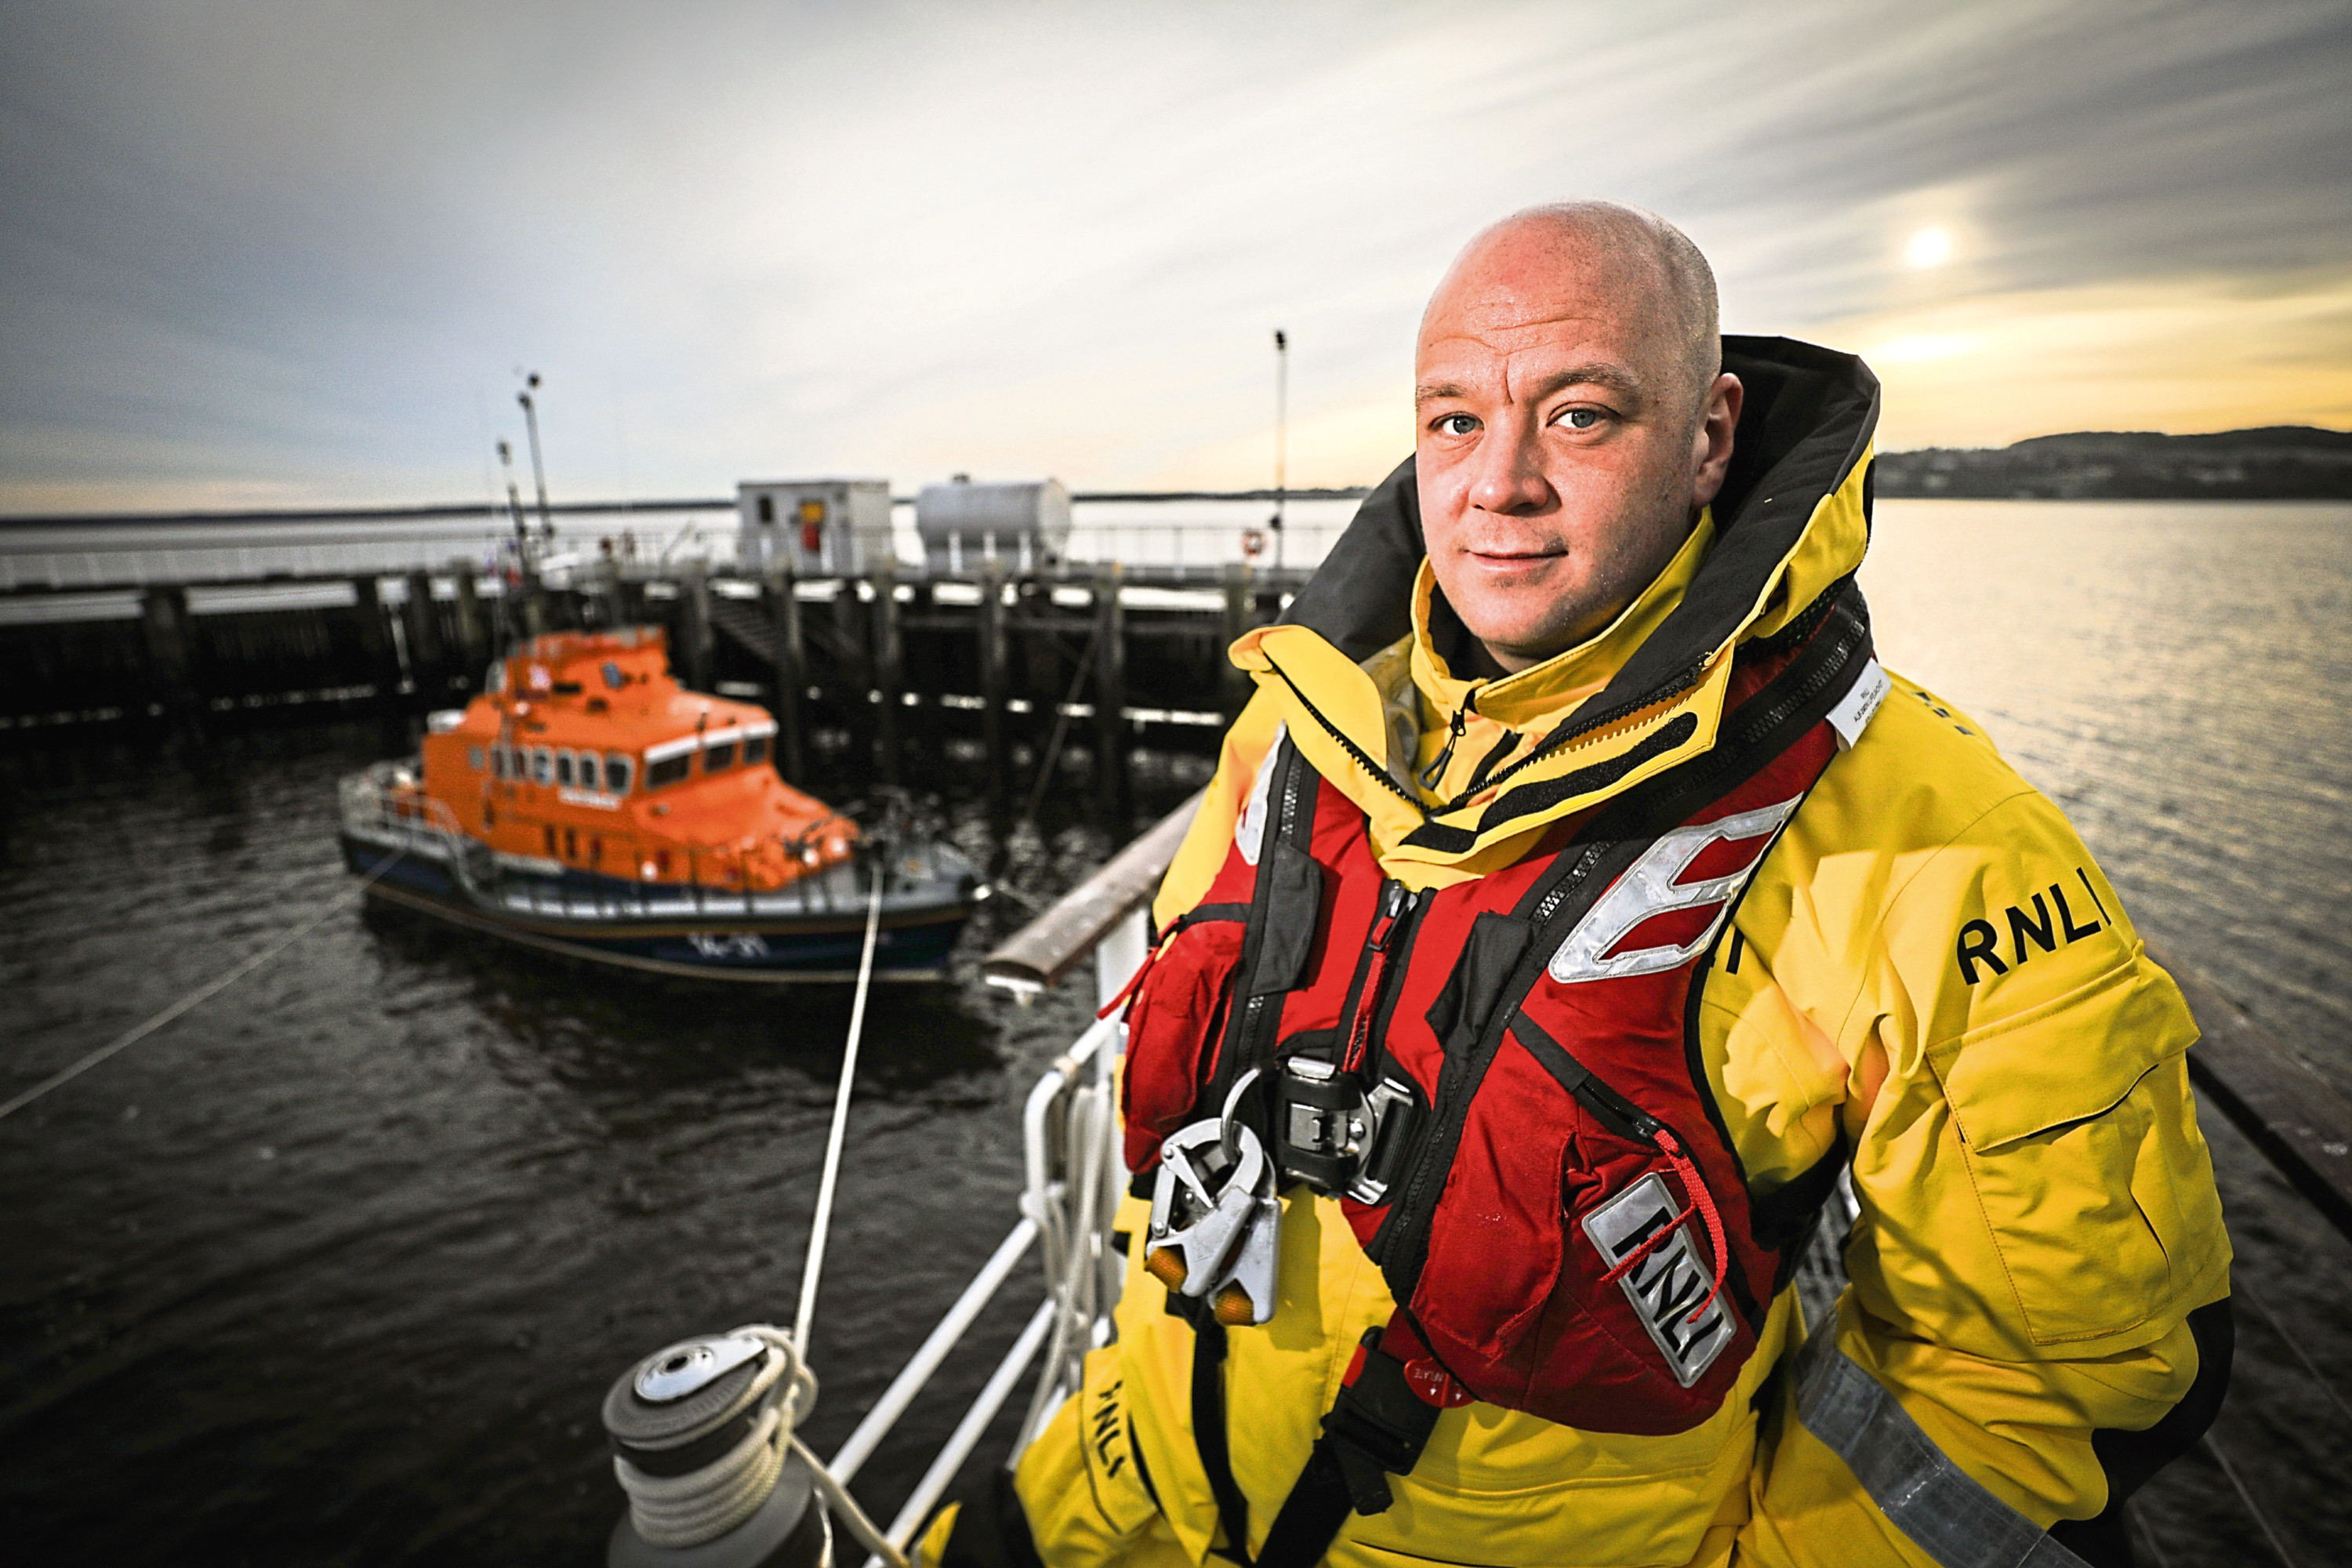 Benny Thomson who joined the Broughty Ferry crew after being saved in a dramatic rescue himself, seven years ago.